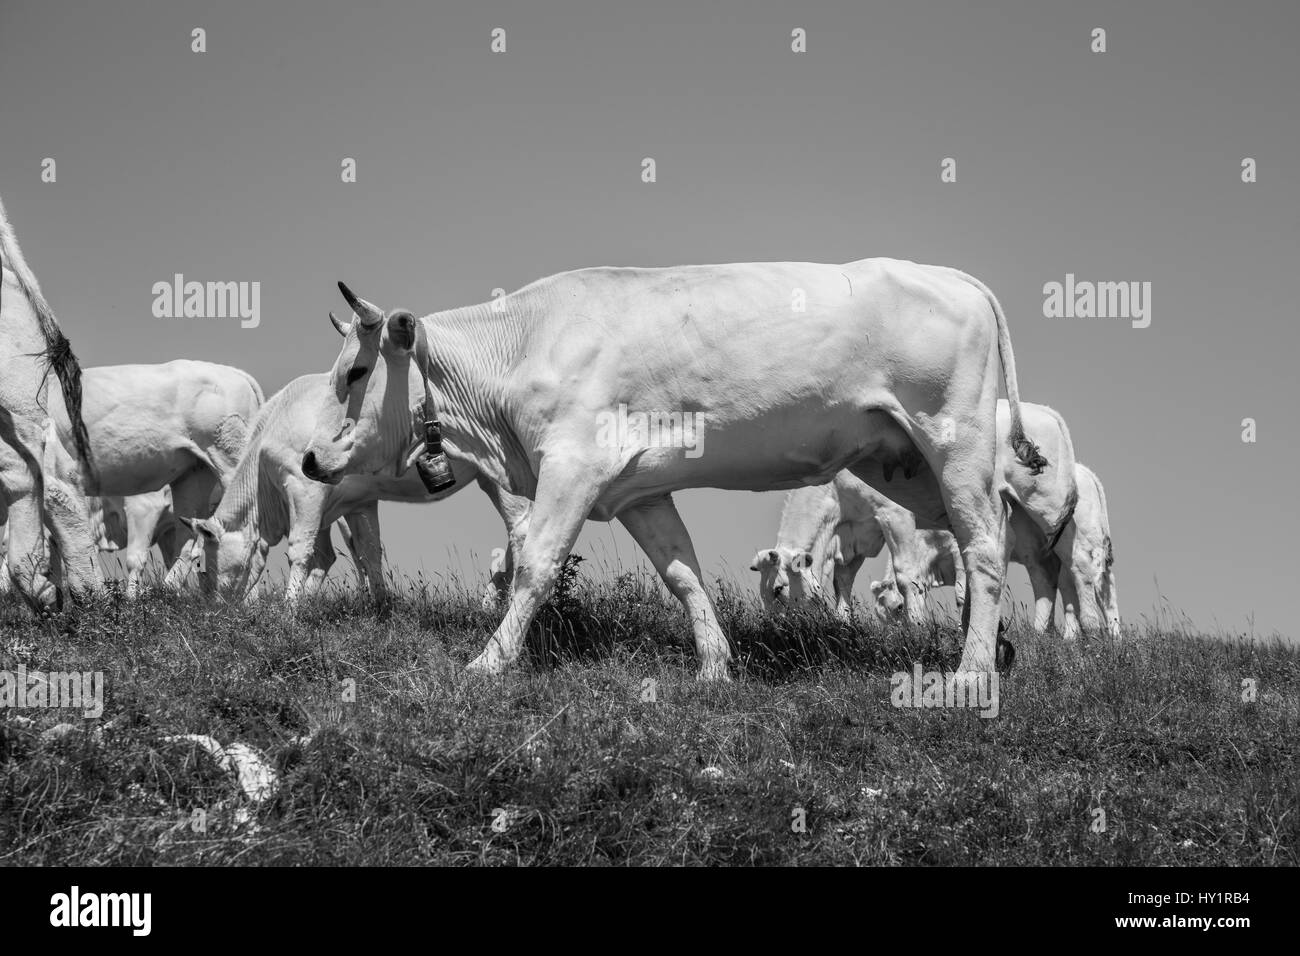 Herd of cows grazing in the mountains - Stock Image